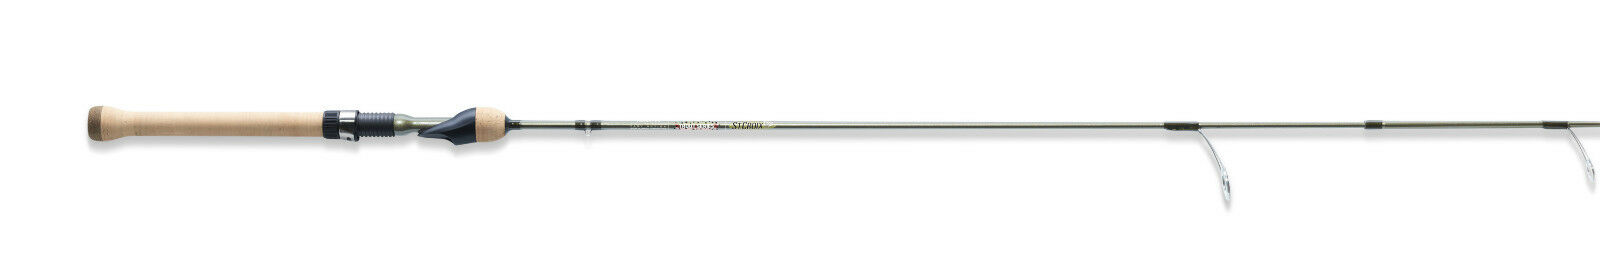 St. Croix  Trout Series Spinning Rod 6' Ult-Lt Fast 2pc (TSS60ULF2)  classic style